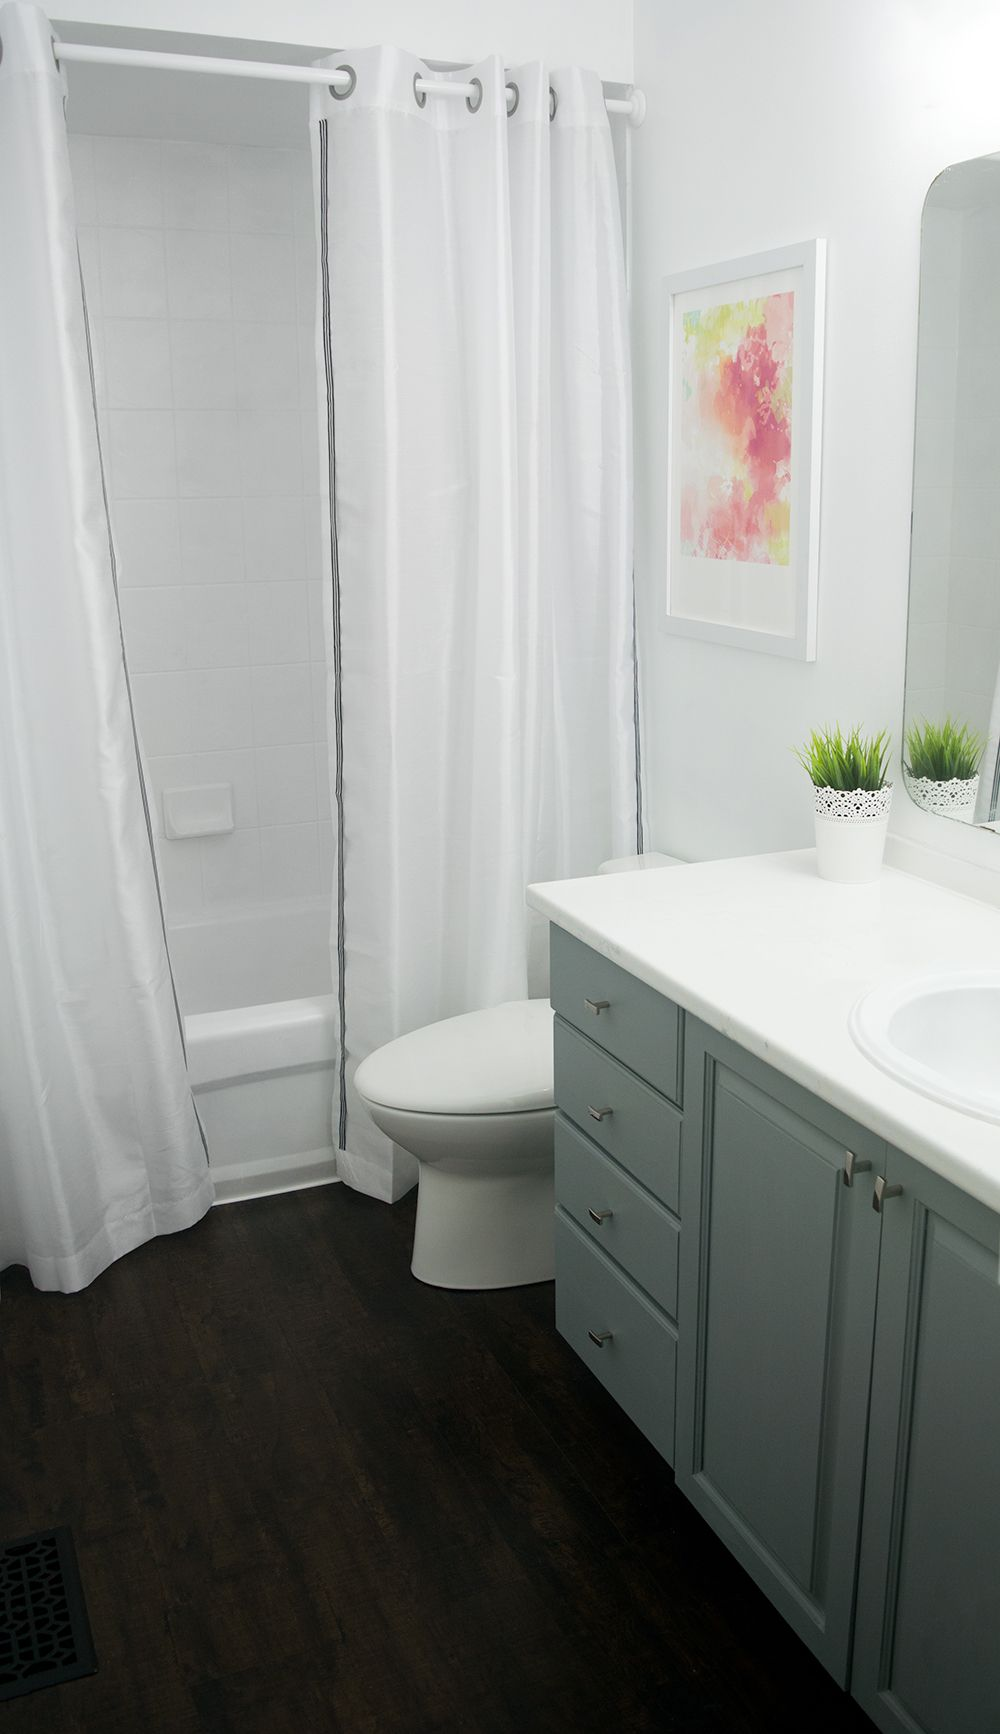 How To Paint Bathroom Cabinets | Painting bathroom ...